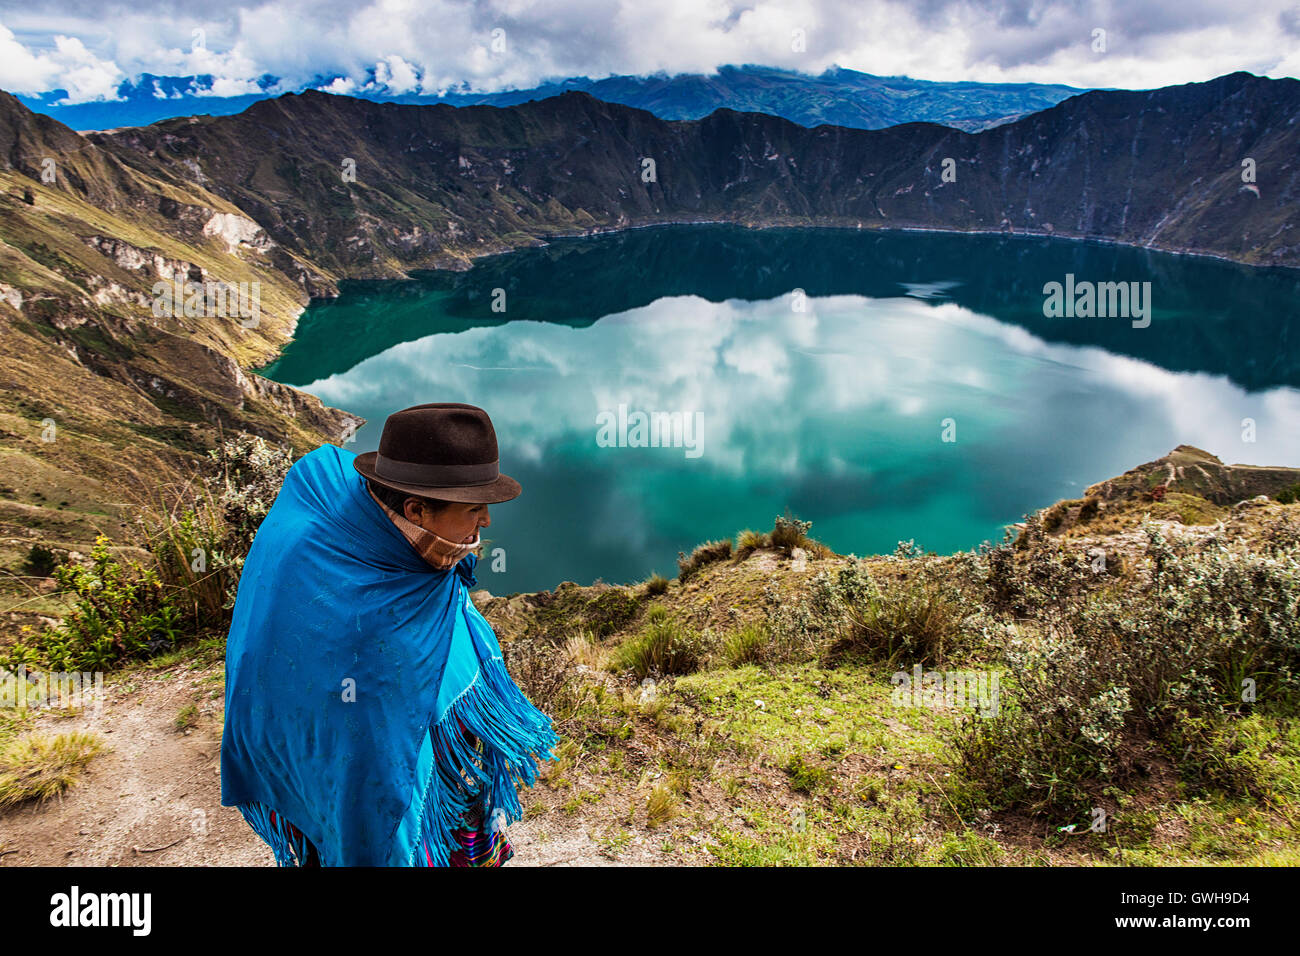 Quilotoa, Ecuador - January 27, 2014: Ecuadorian woman wearing traditional clothes walking near the Quilotoa Volcano - Stock Image